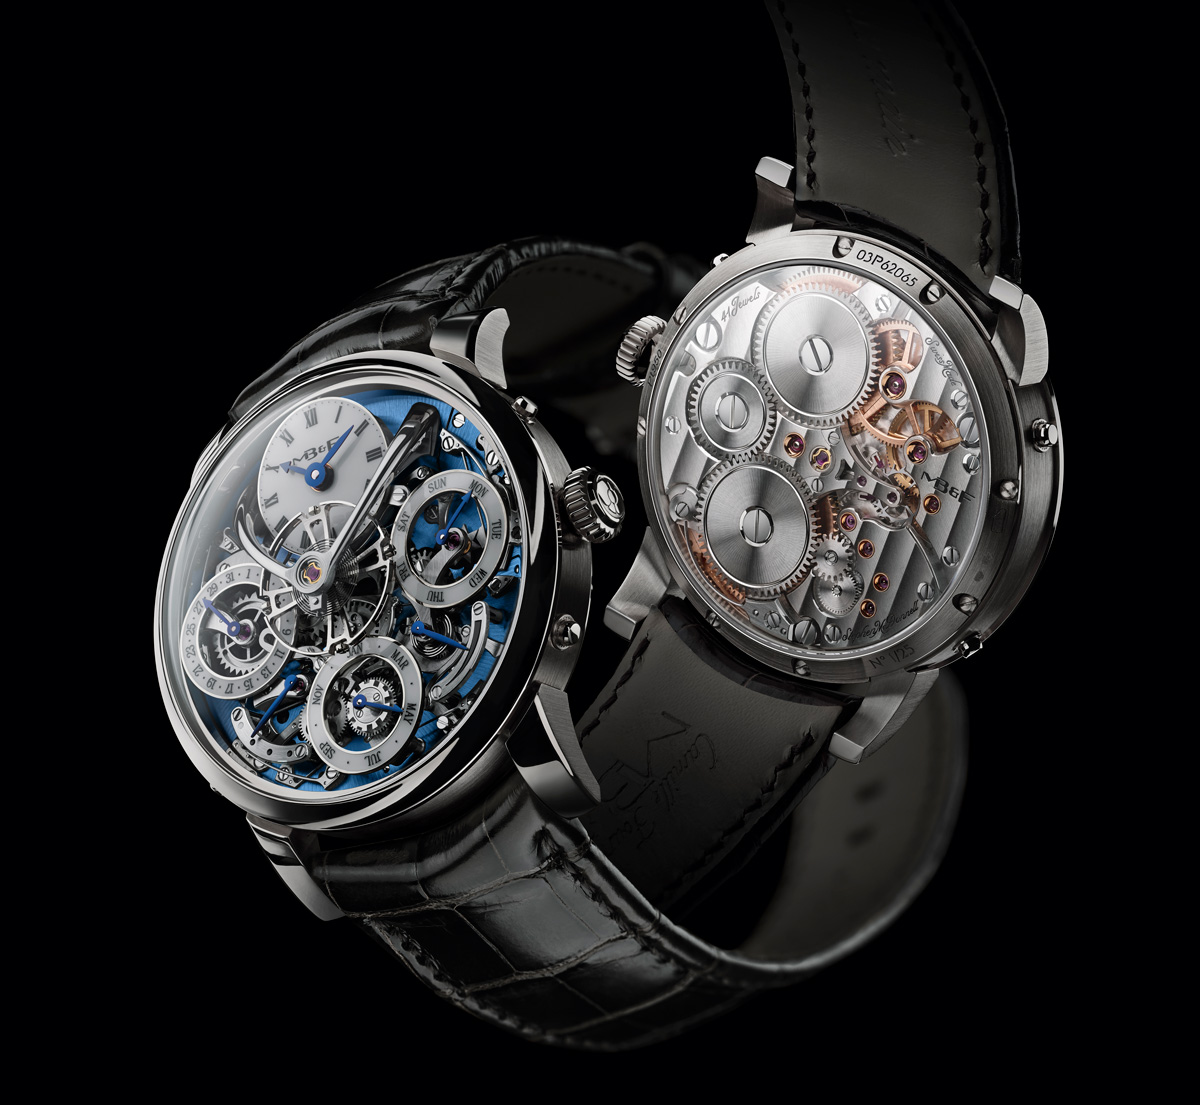 5. Calendar Watch Prize: MB&F, Legacy Machine Perpetual